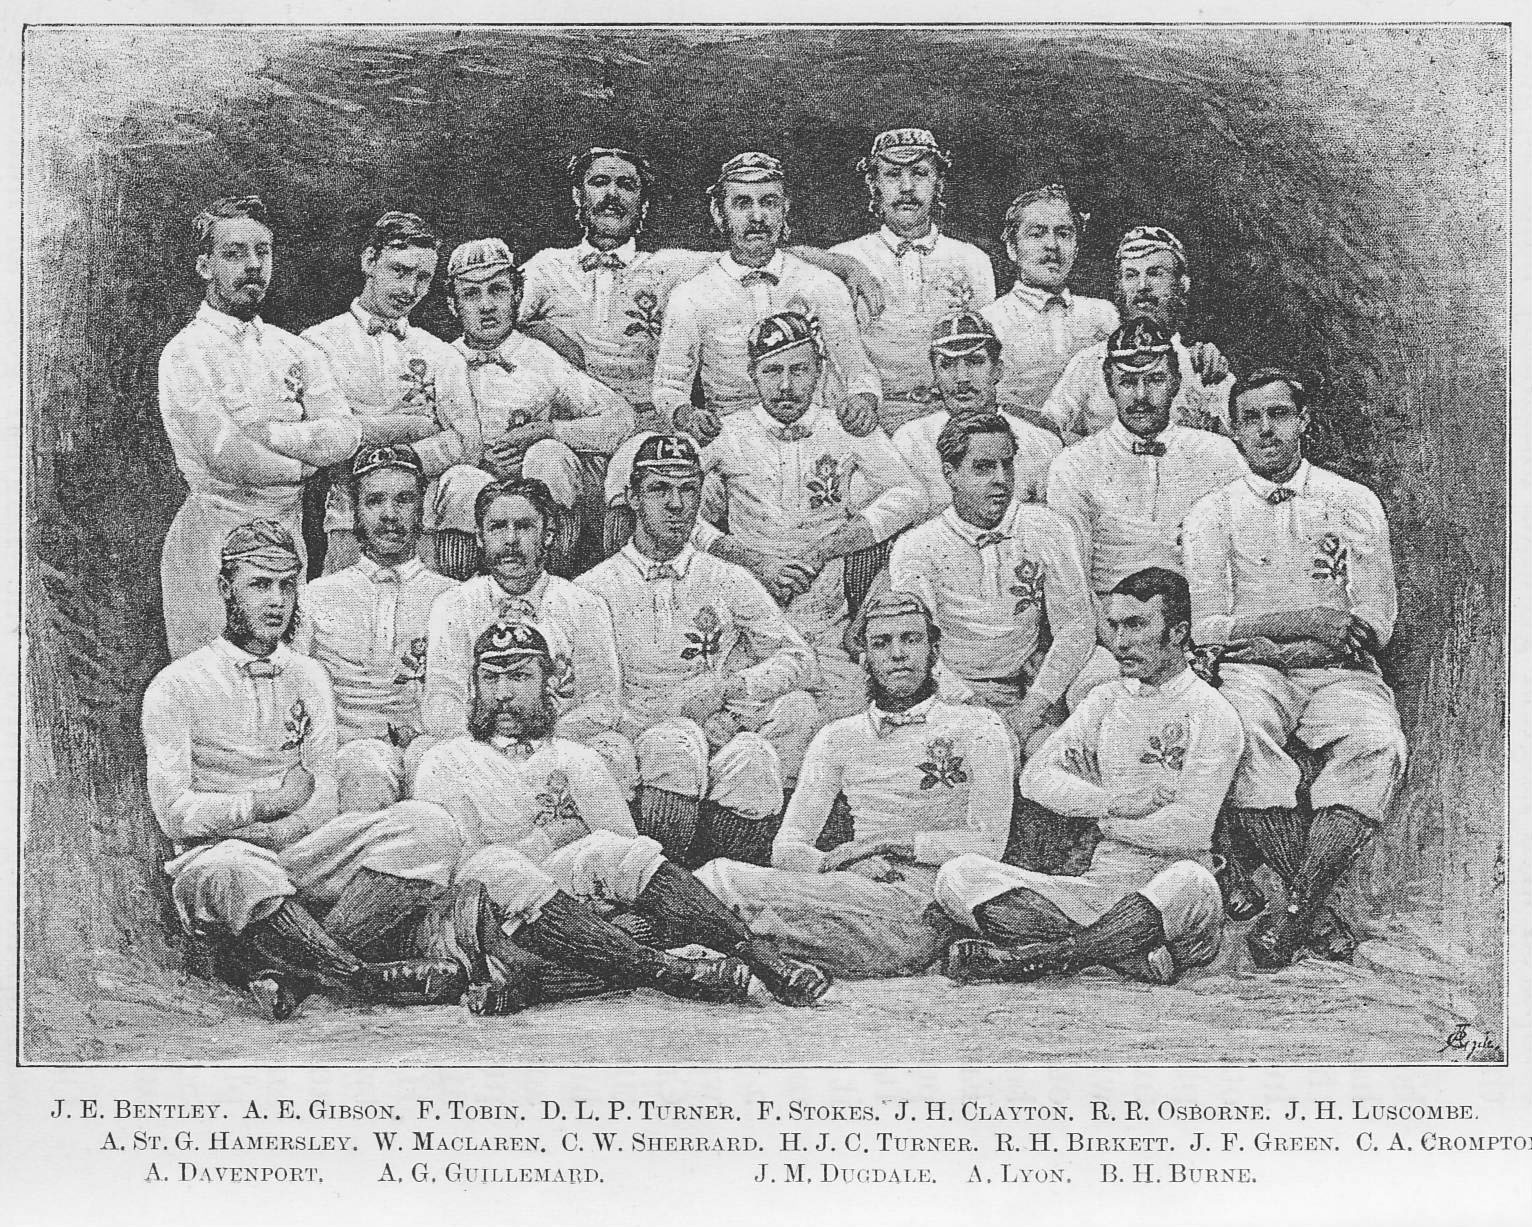 The First England Team, 1871, in the 1st international, vs Scotland in Edinburgh, Scotland won by 1 goal & 1 try to 1 try